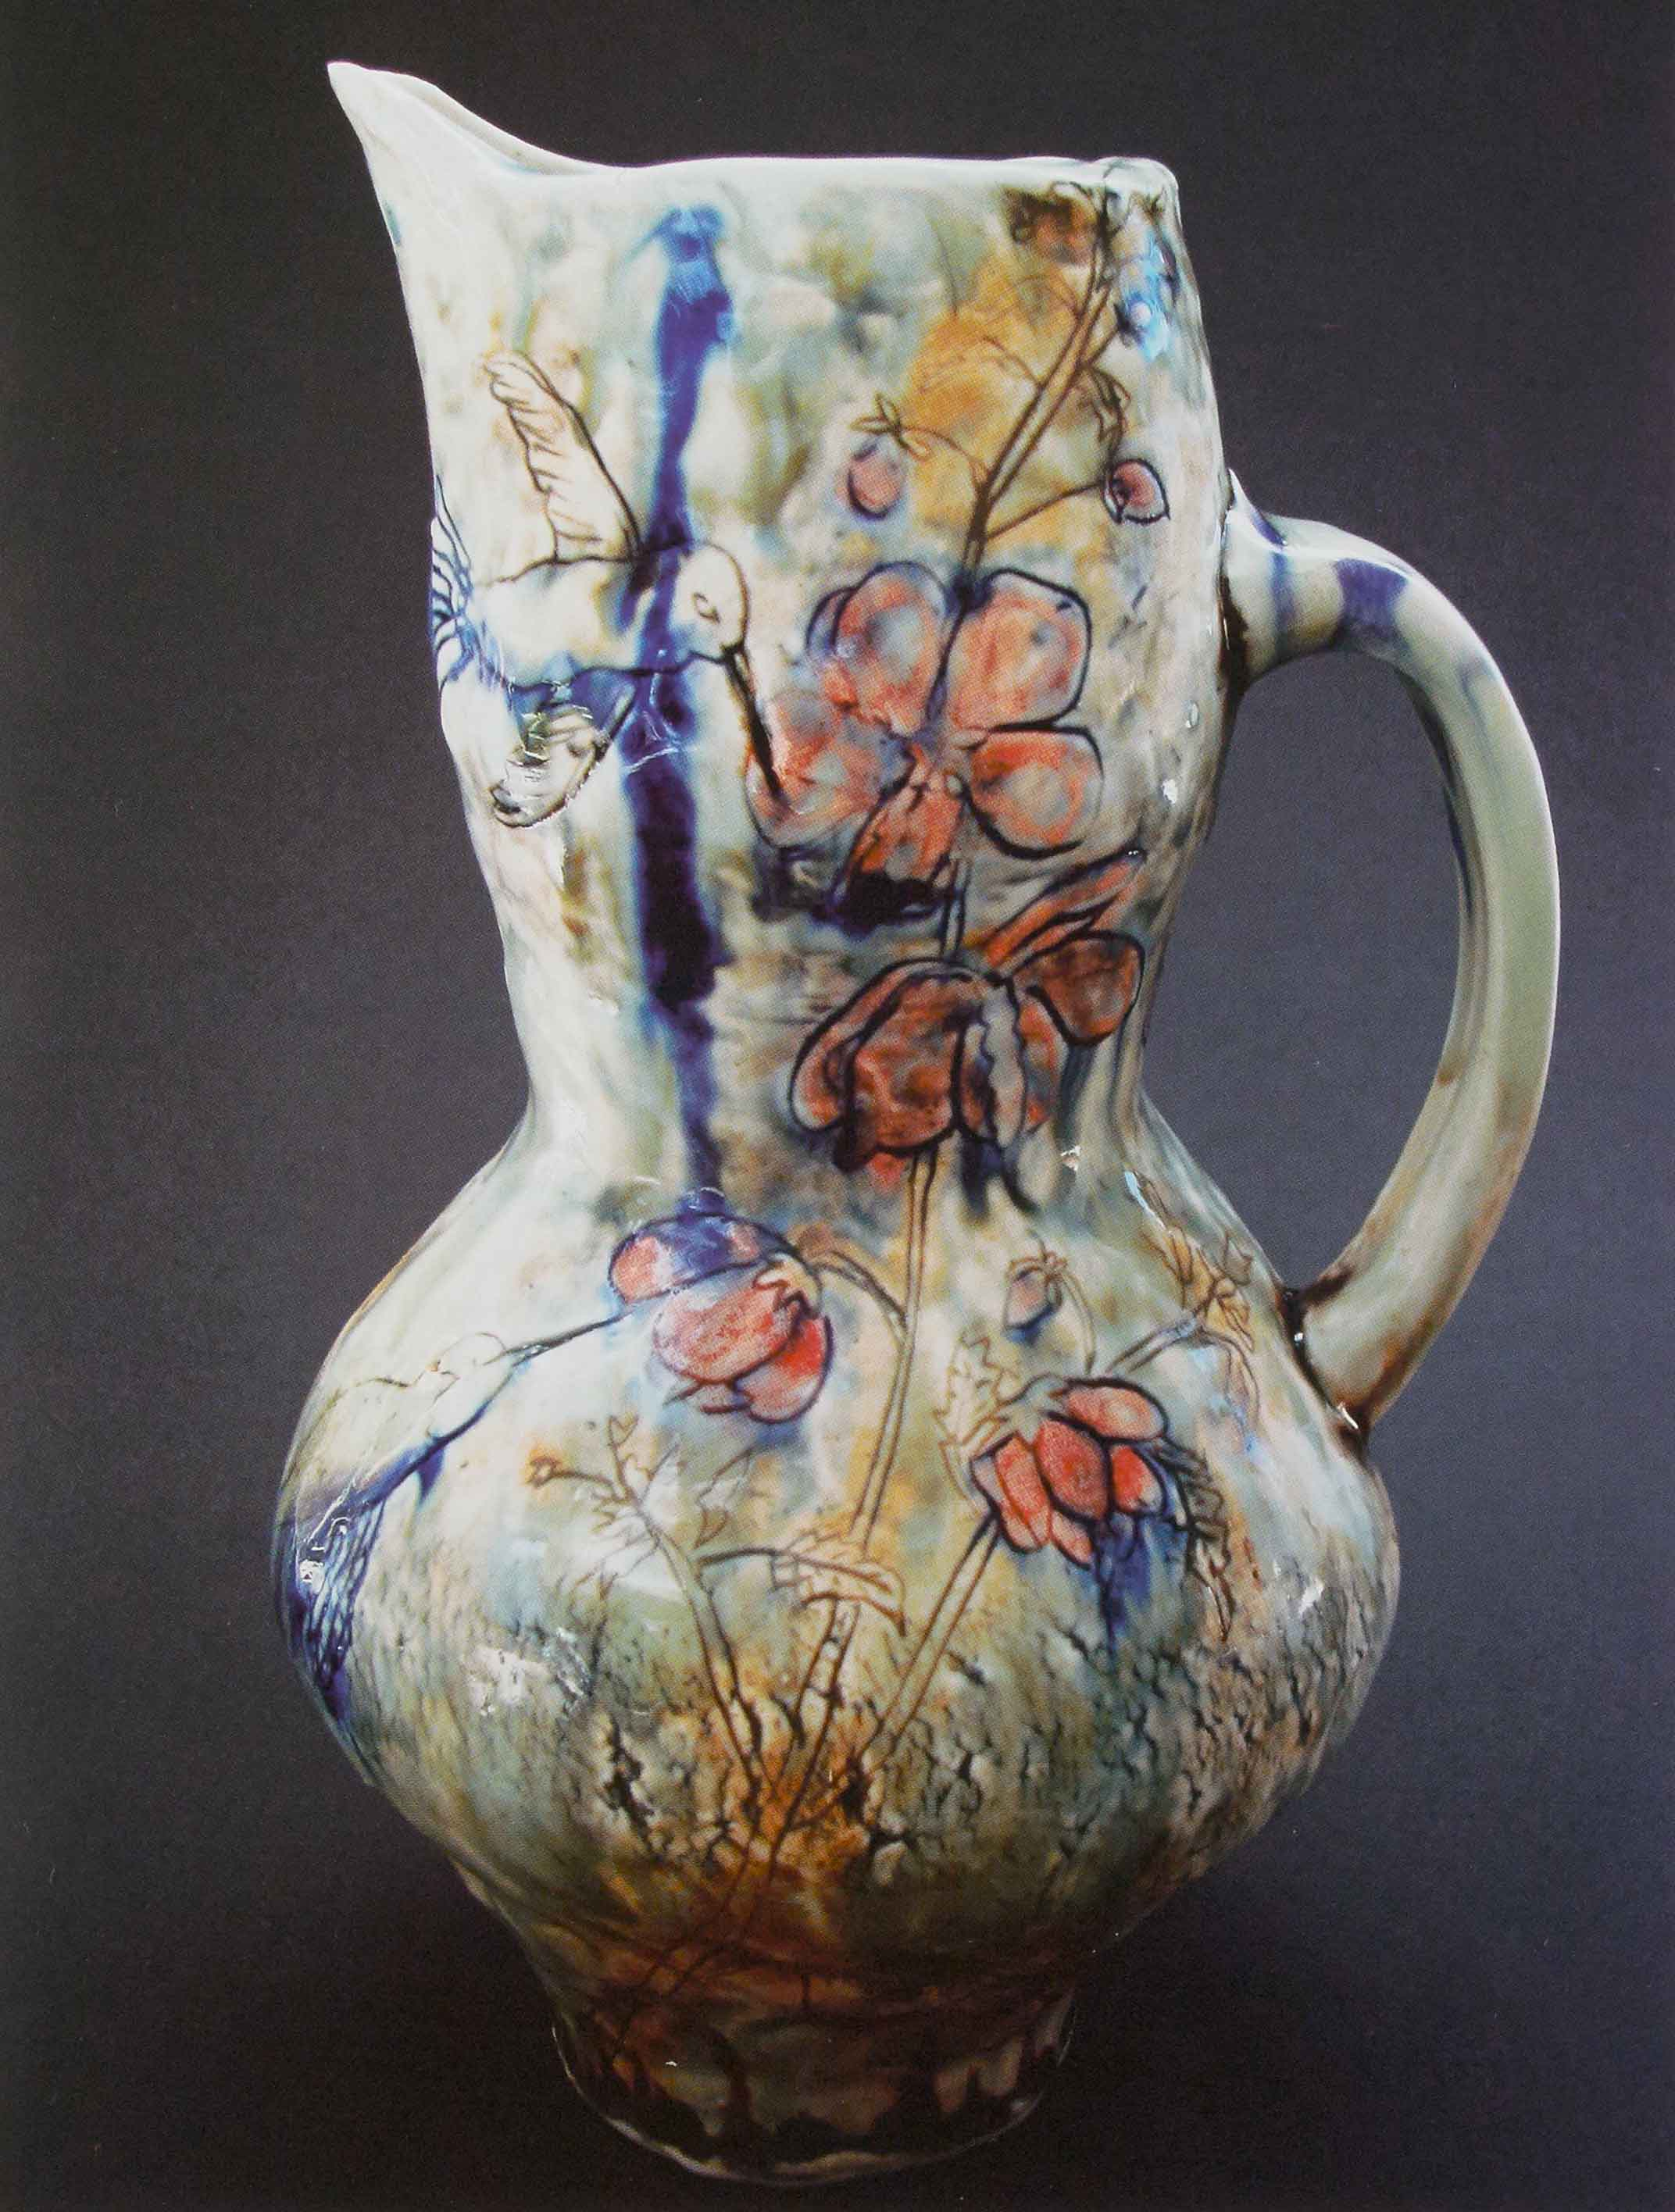 Hummingbird Pitcher, 2008. Pinched porcelain, 11 x 6 x 5 in.